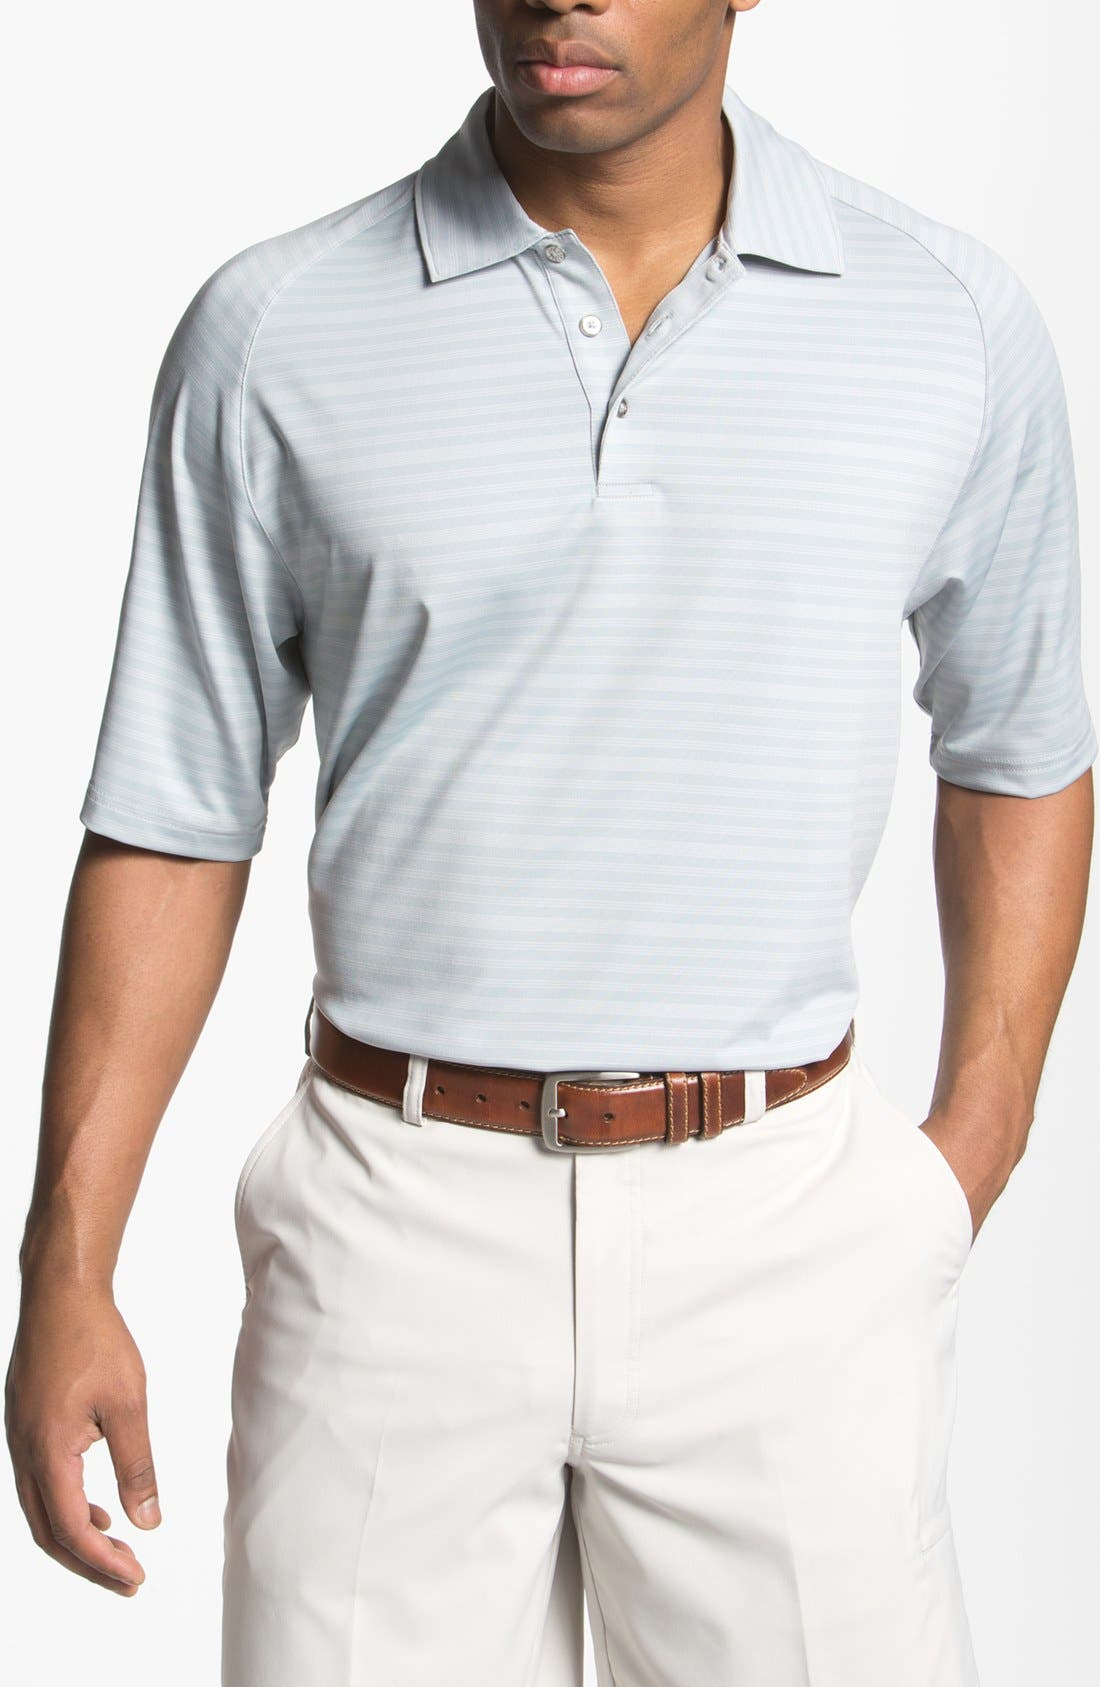 Alternate Image 1 Selected - Lone Cypress Pebble Beach Knit Polo